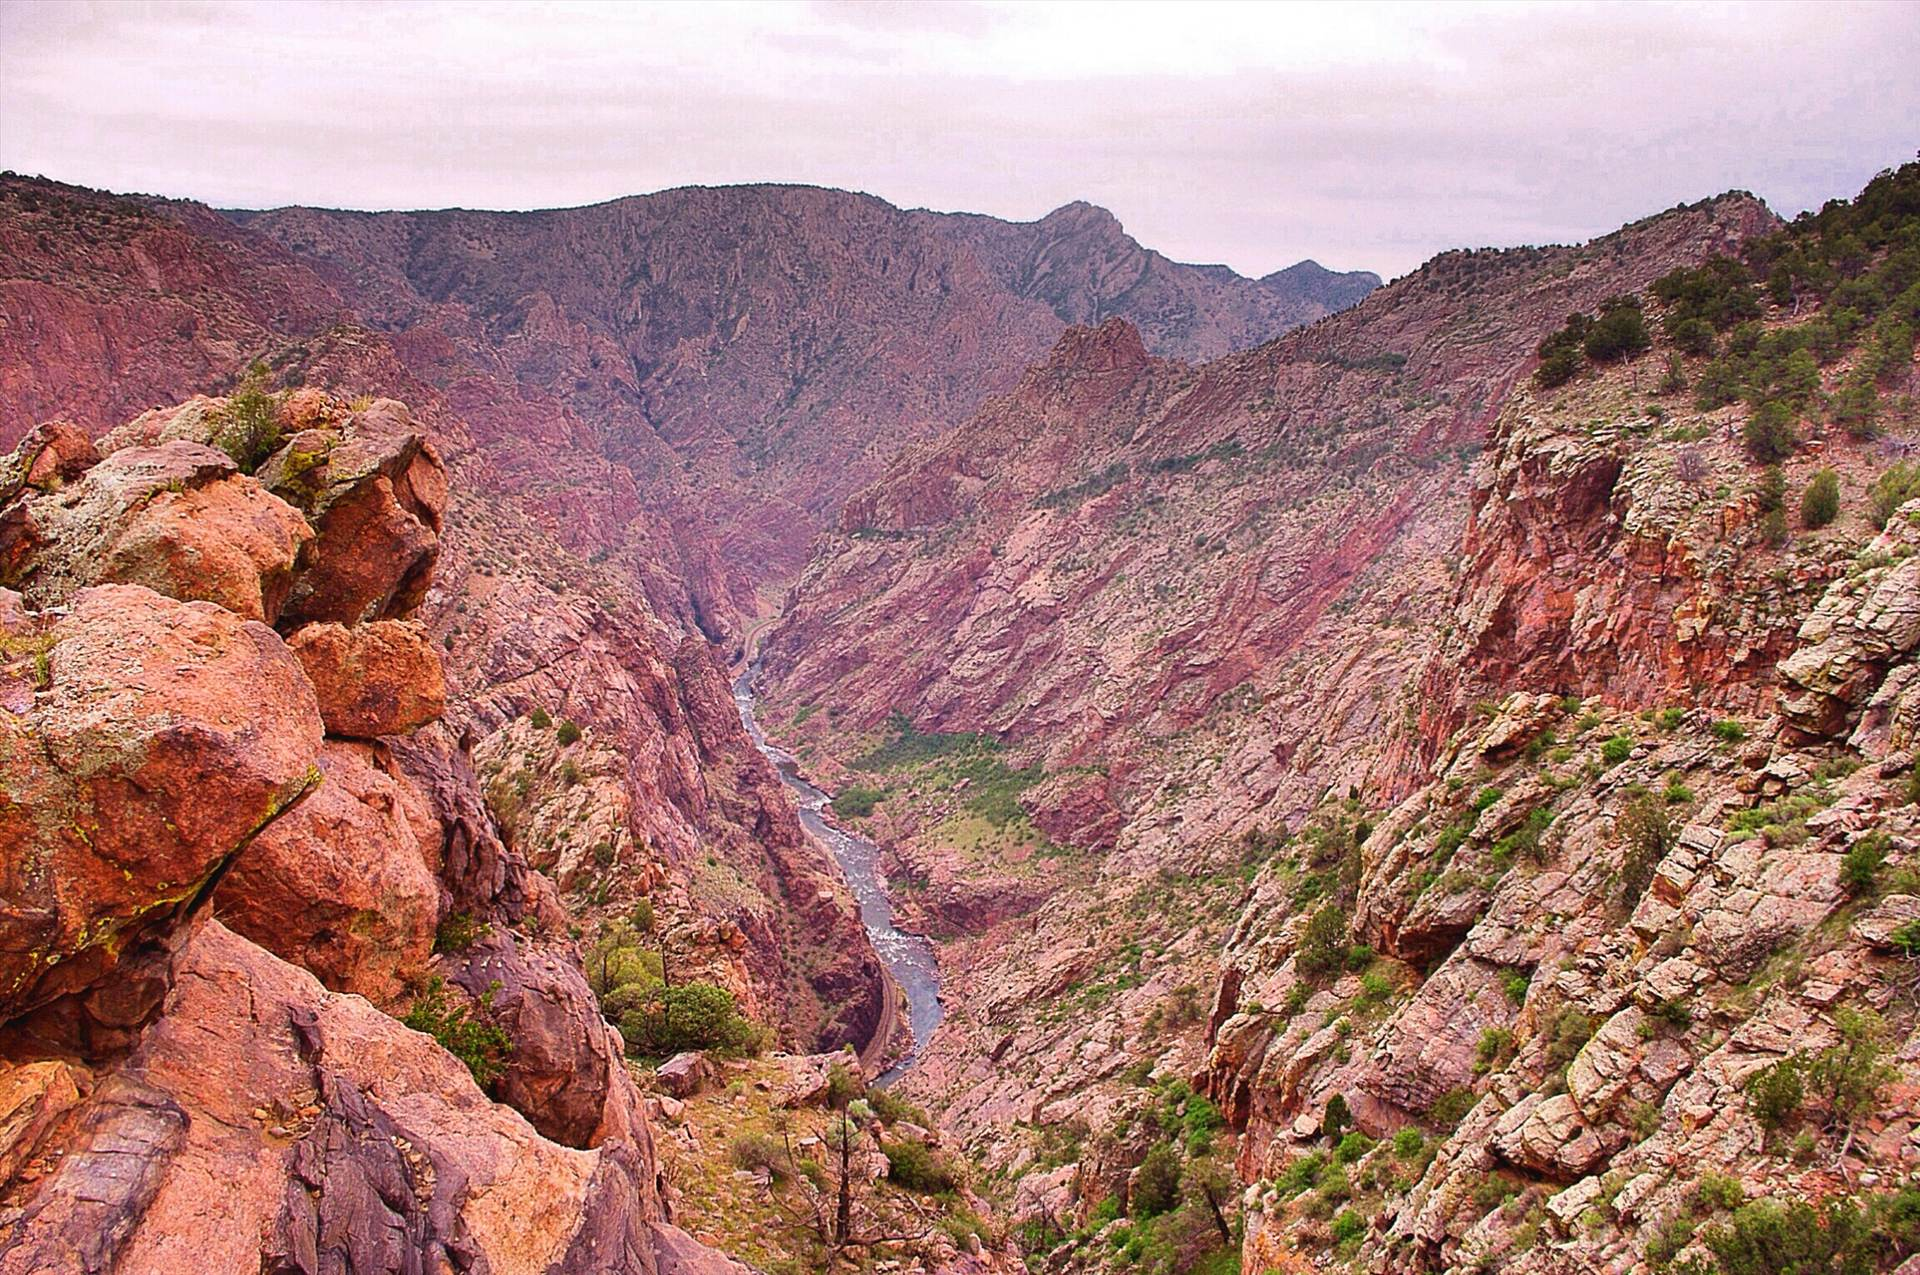 The Royal Gorge Canyon near Canon City, Colorado. The inspiring view from one of the world's highest suspension bridges - hanging 956 feet & spanning 1/4 mile across the canyon is a must see for any photographer. Take a 7 paggenger trolley across the canyon via a wire cable or choose to seek astonishing  by Tumbleweed Express